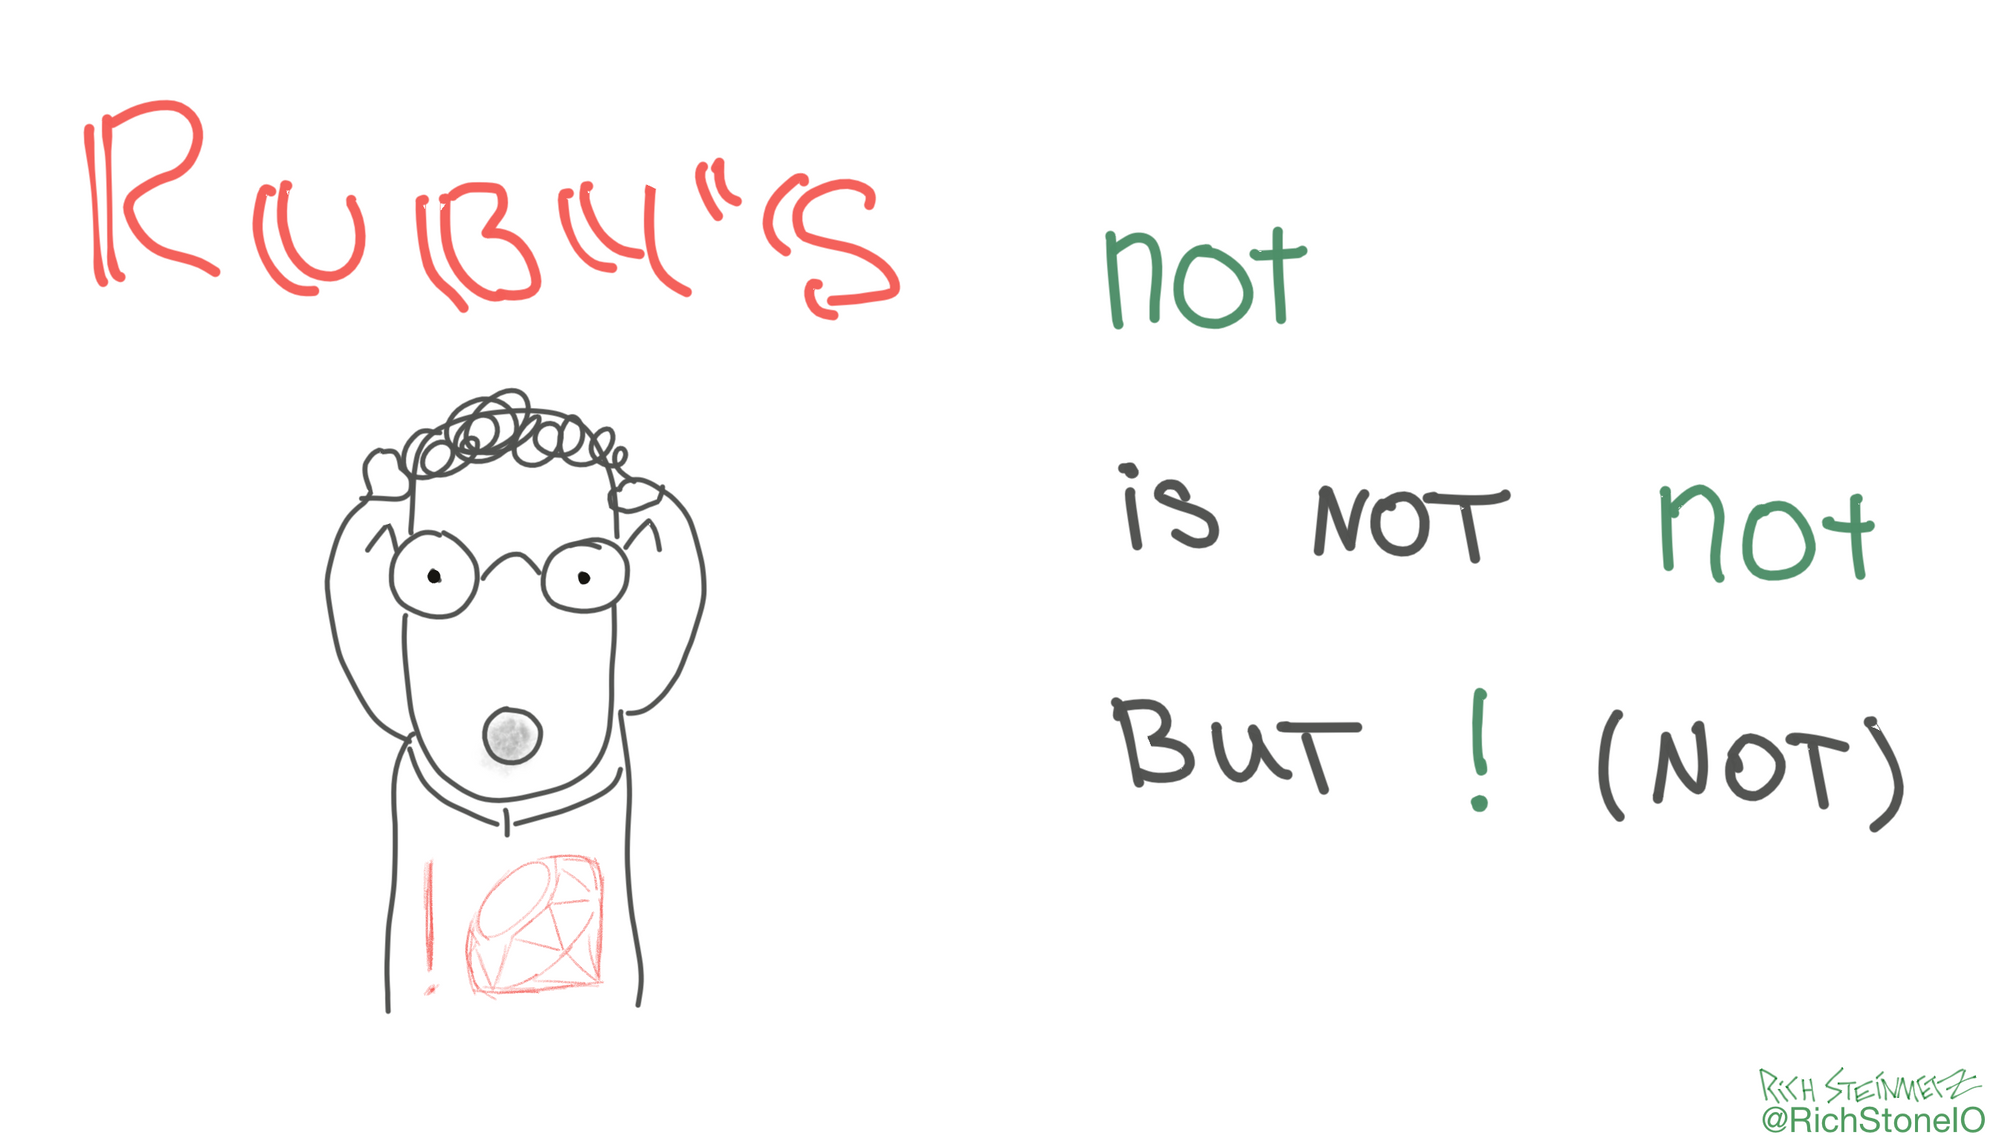 Ruby's not keyword is not not but ! (not)